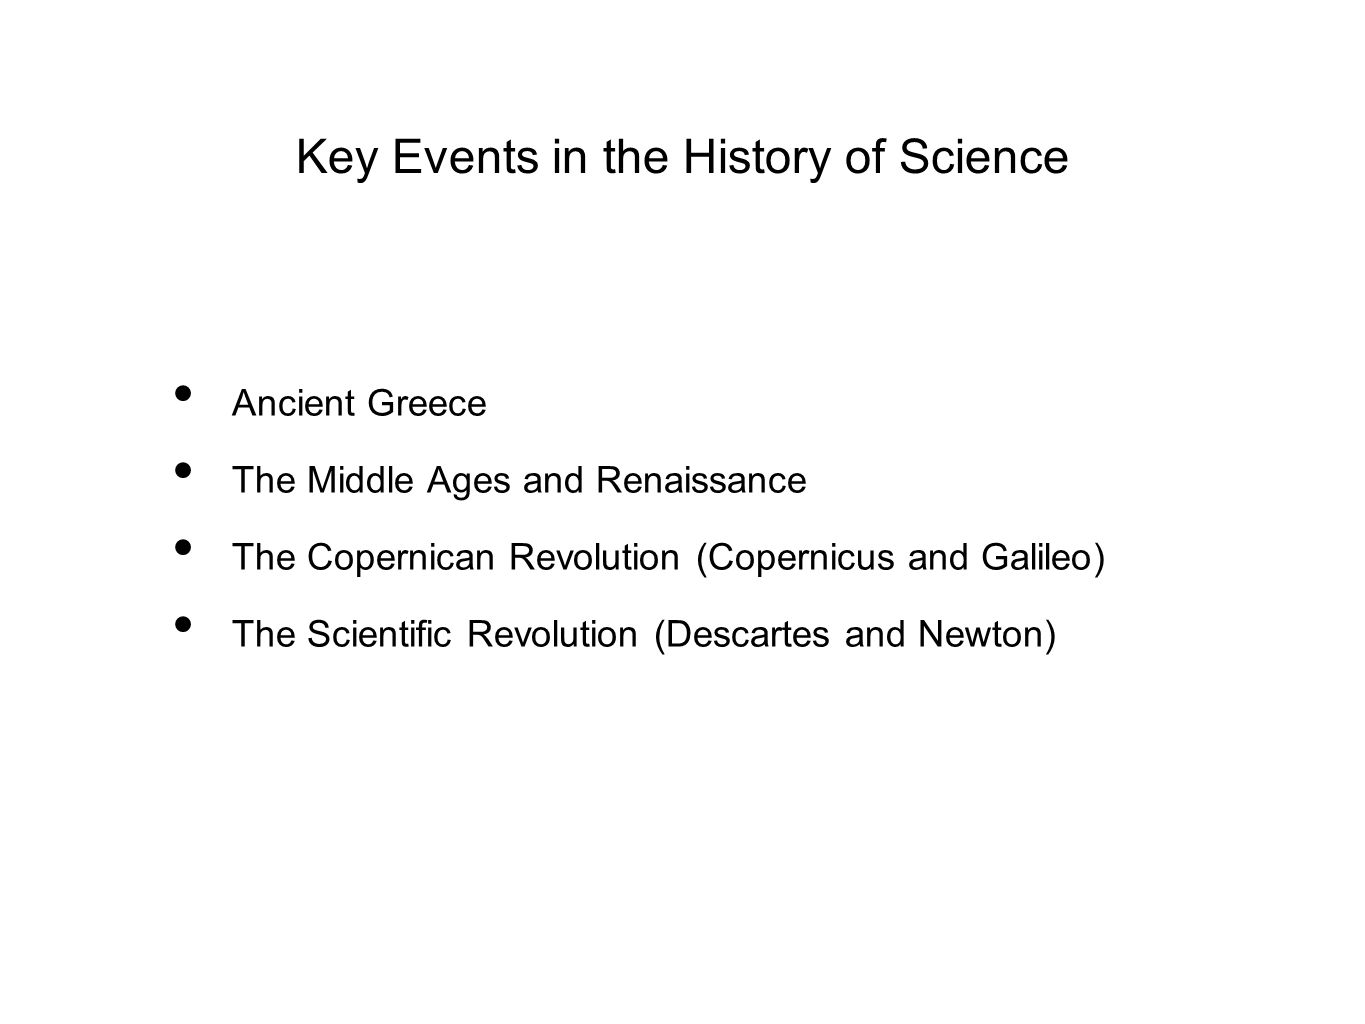 Key Events in the History of Science